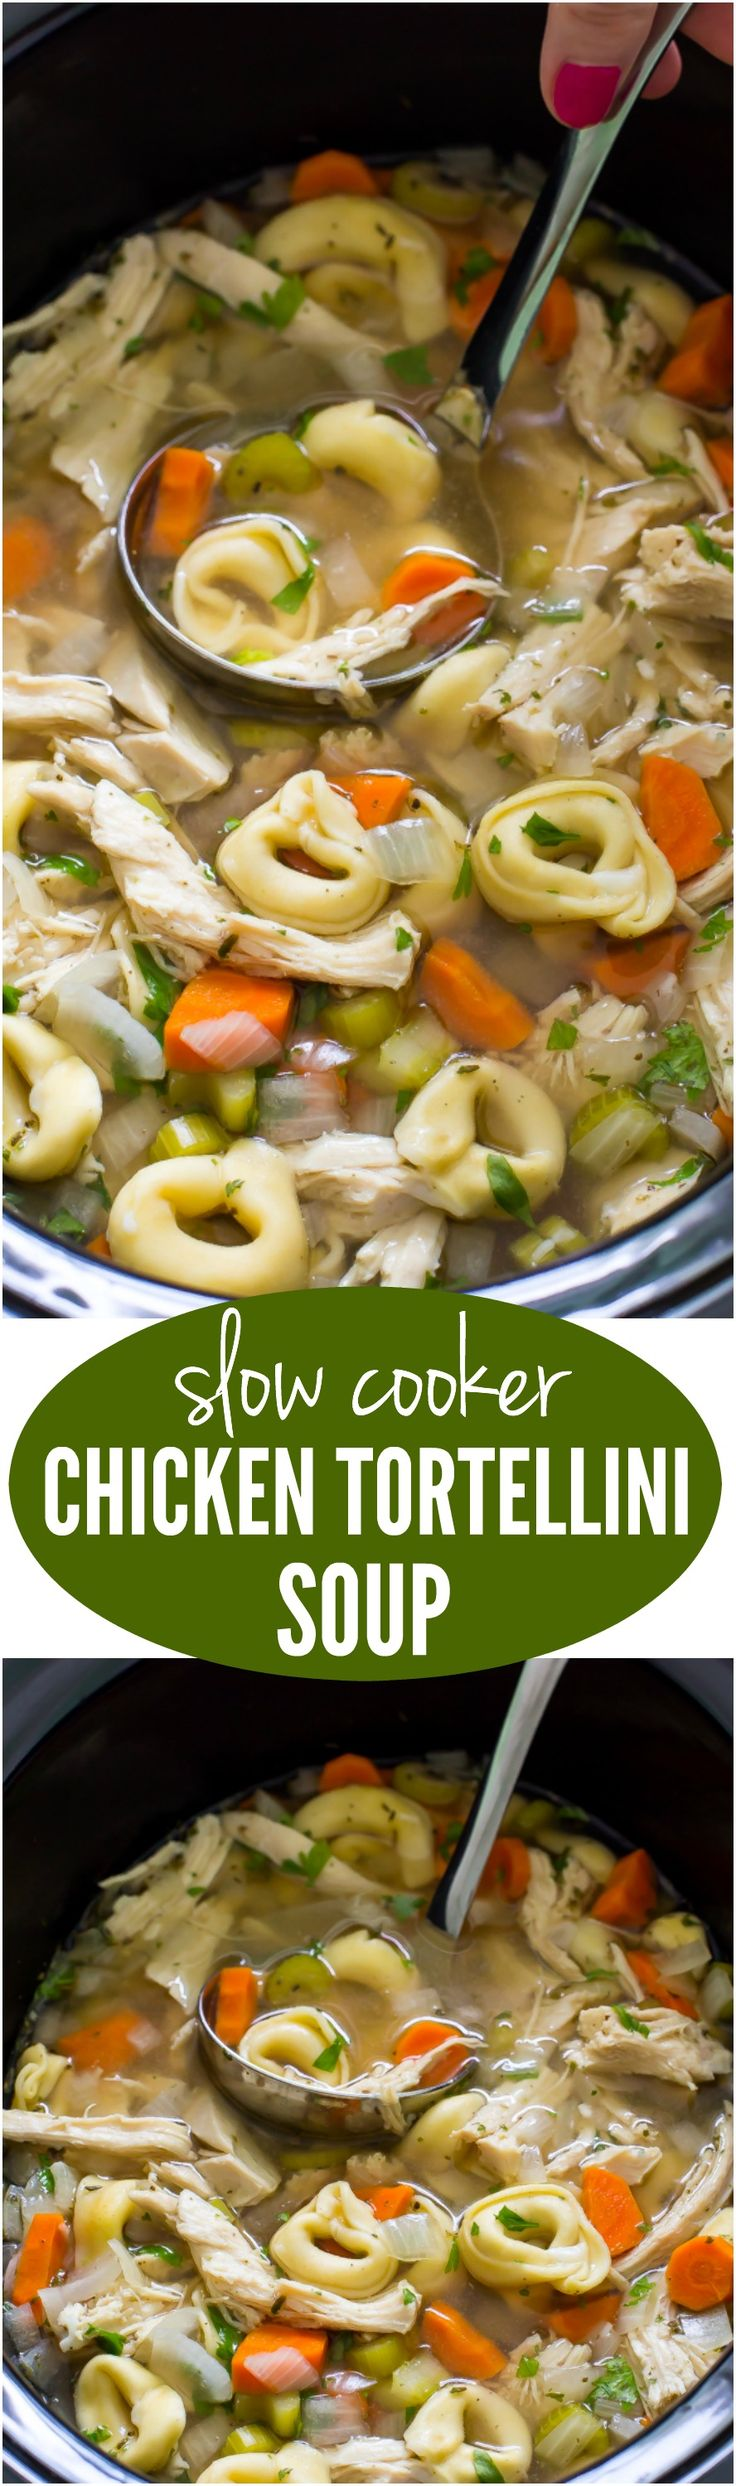 Super Easy Slow Cooker Chicken Tortellini Soup. Loaded with tons of veggies…